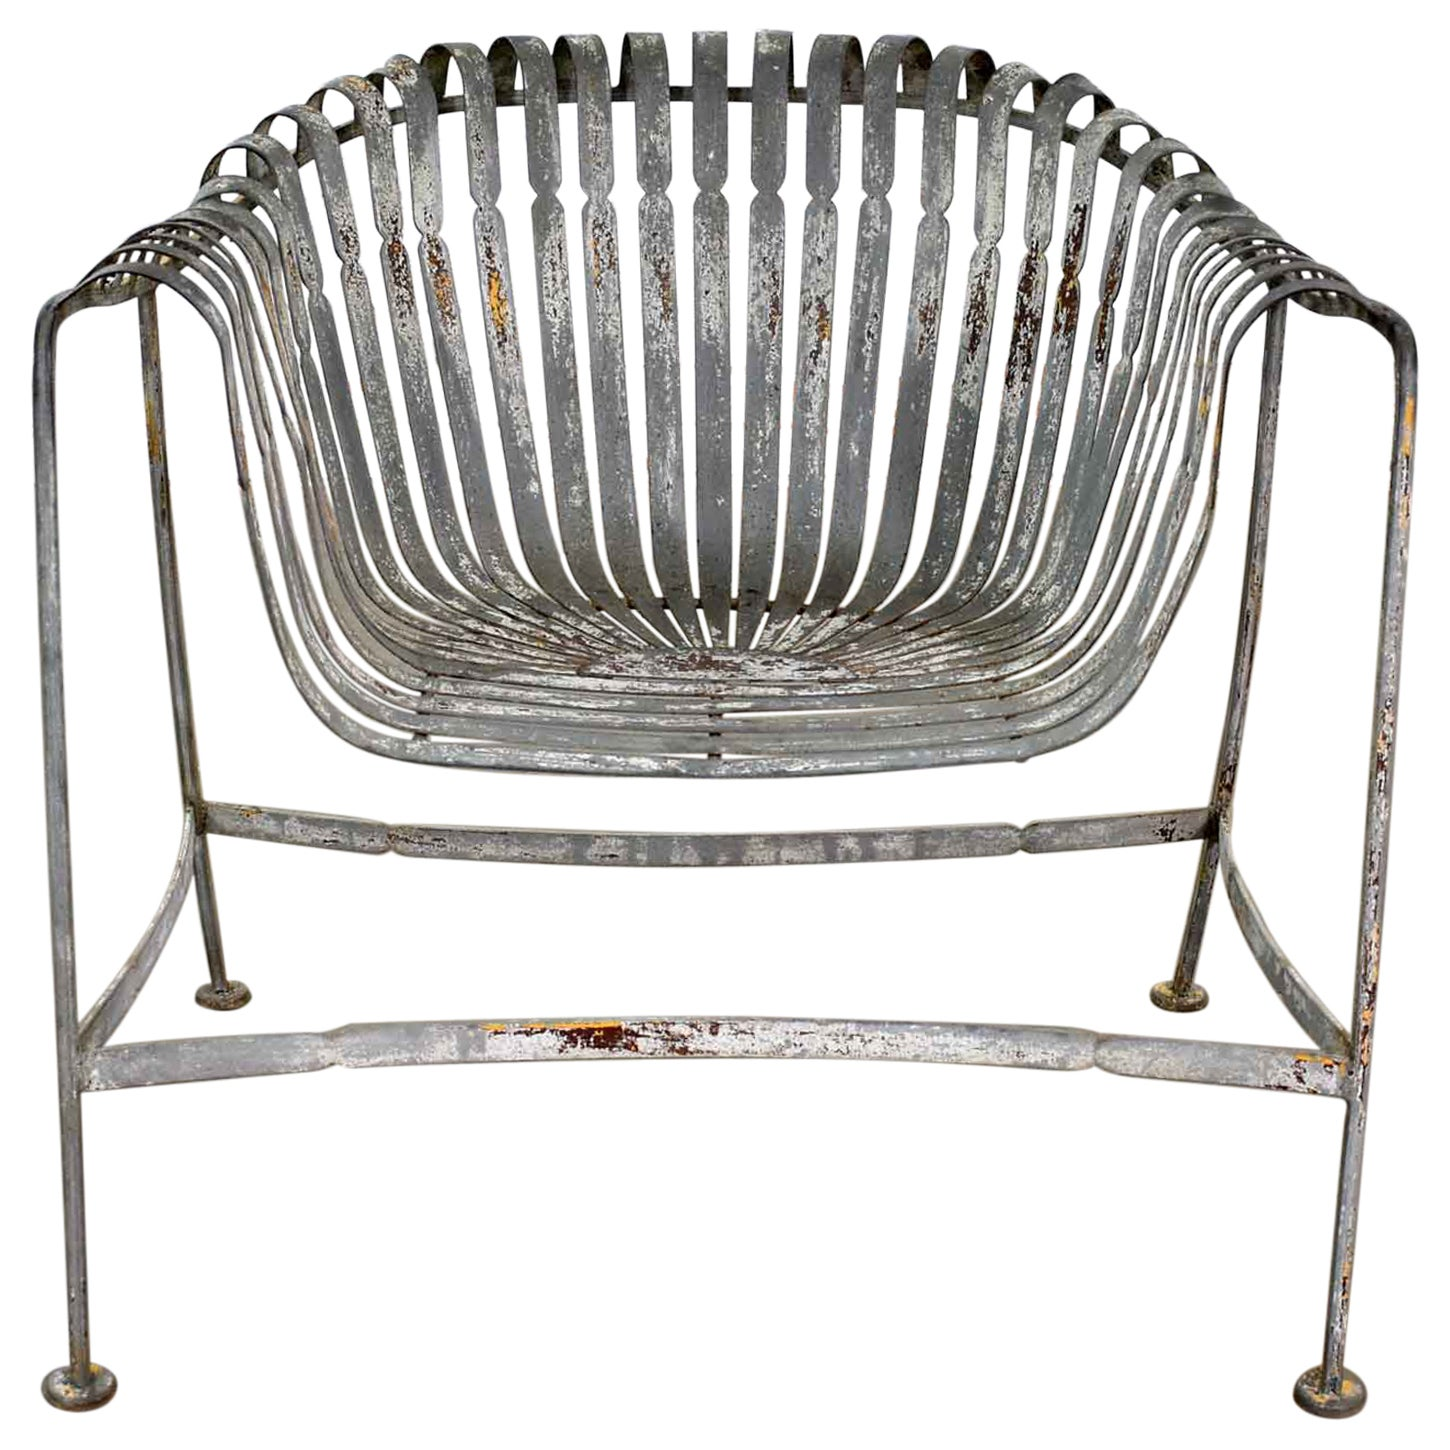 Vintage Rustic Spring Steel Fan Roll Back Garden Chair Style Francois Carré